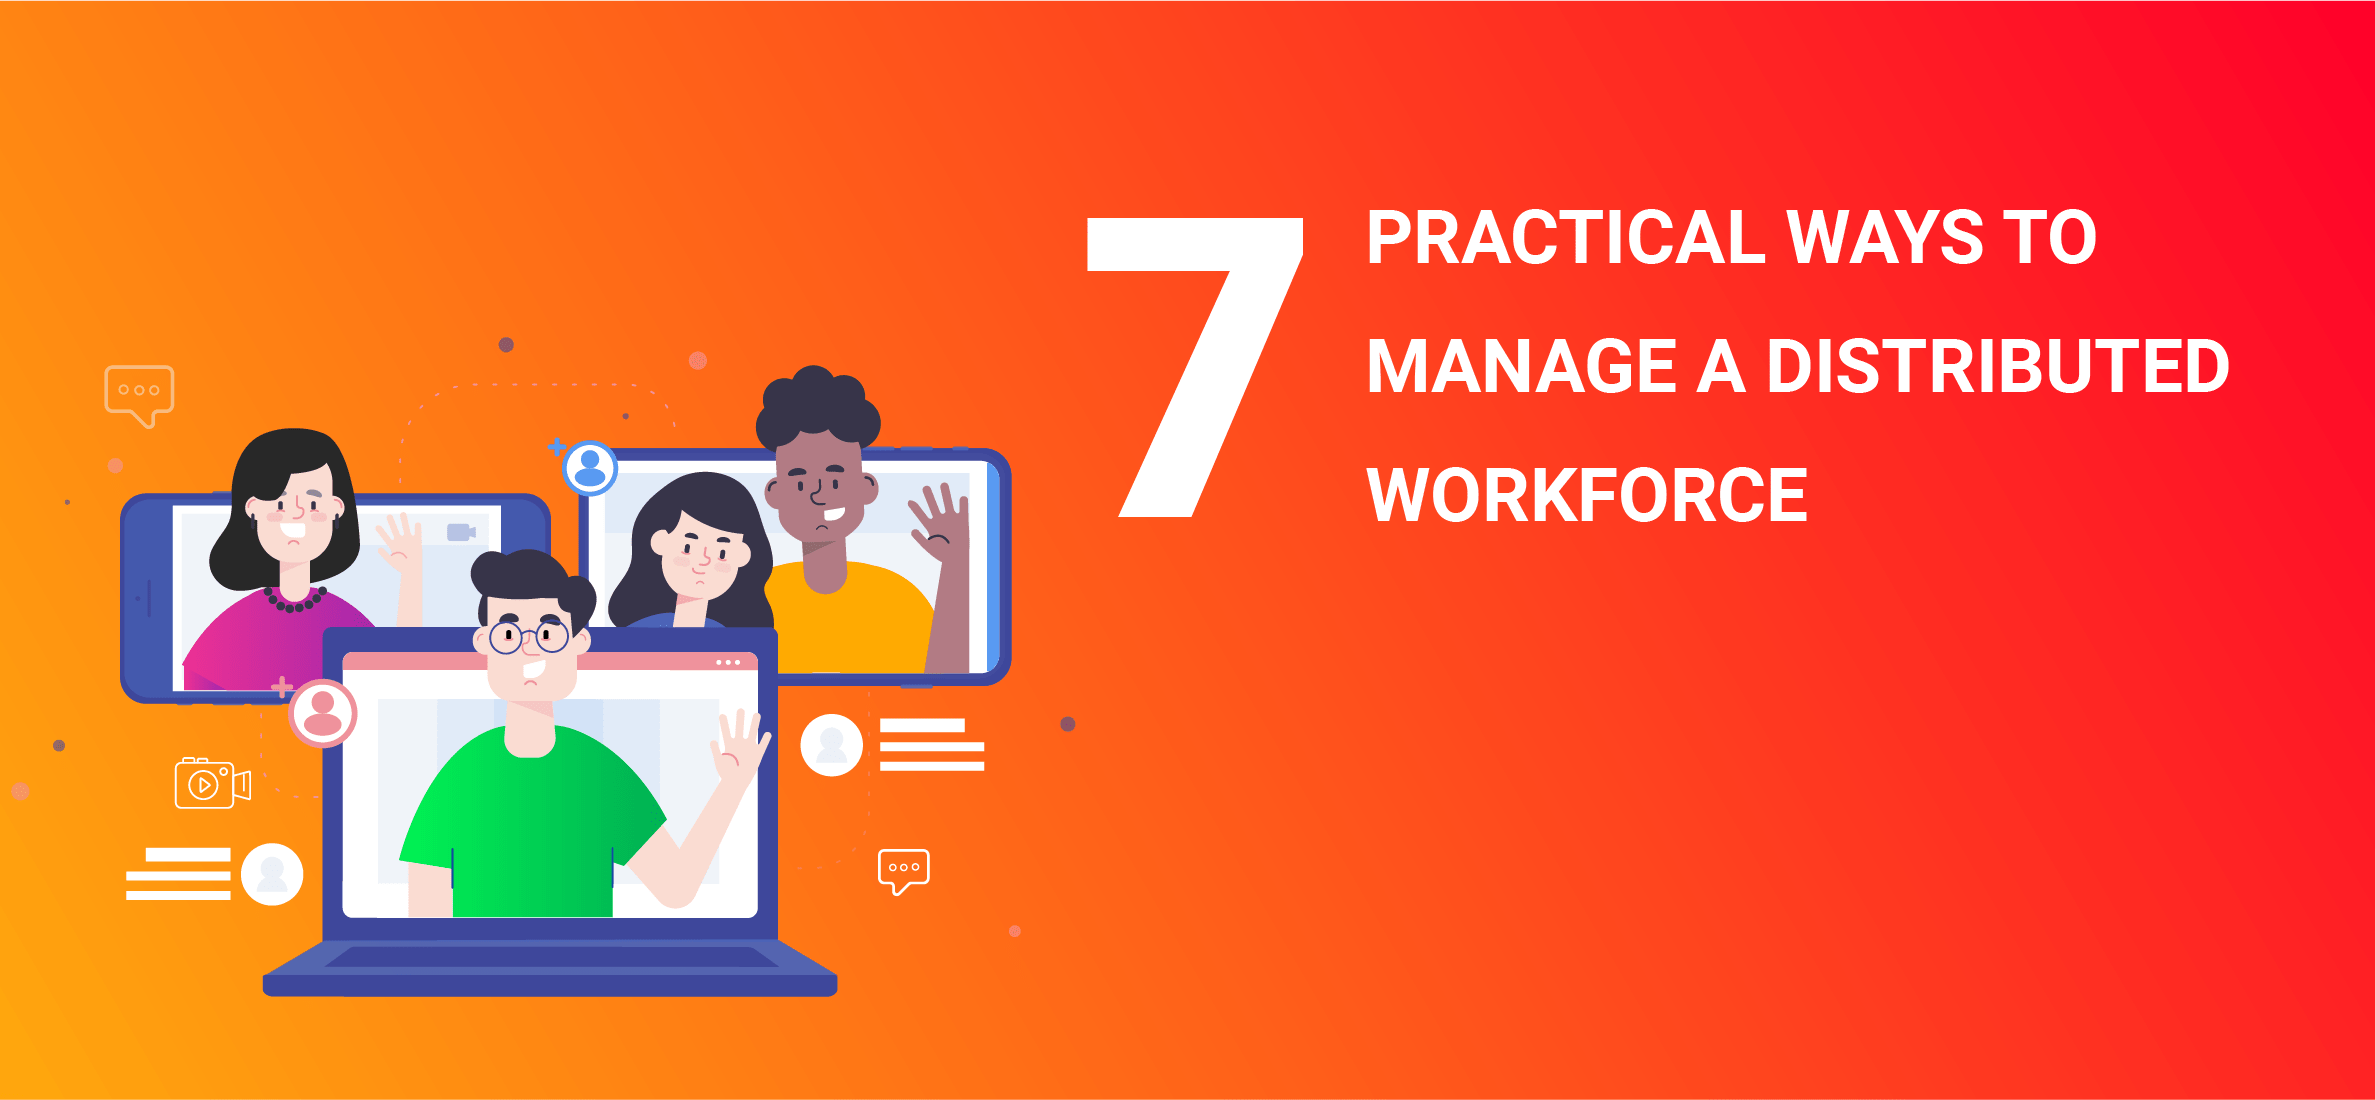 Seven Practical Ways to manage a distributed workforce